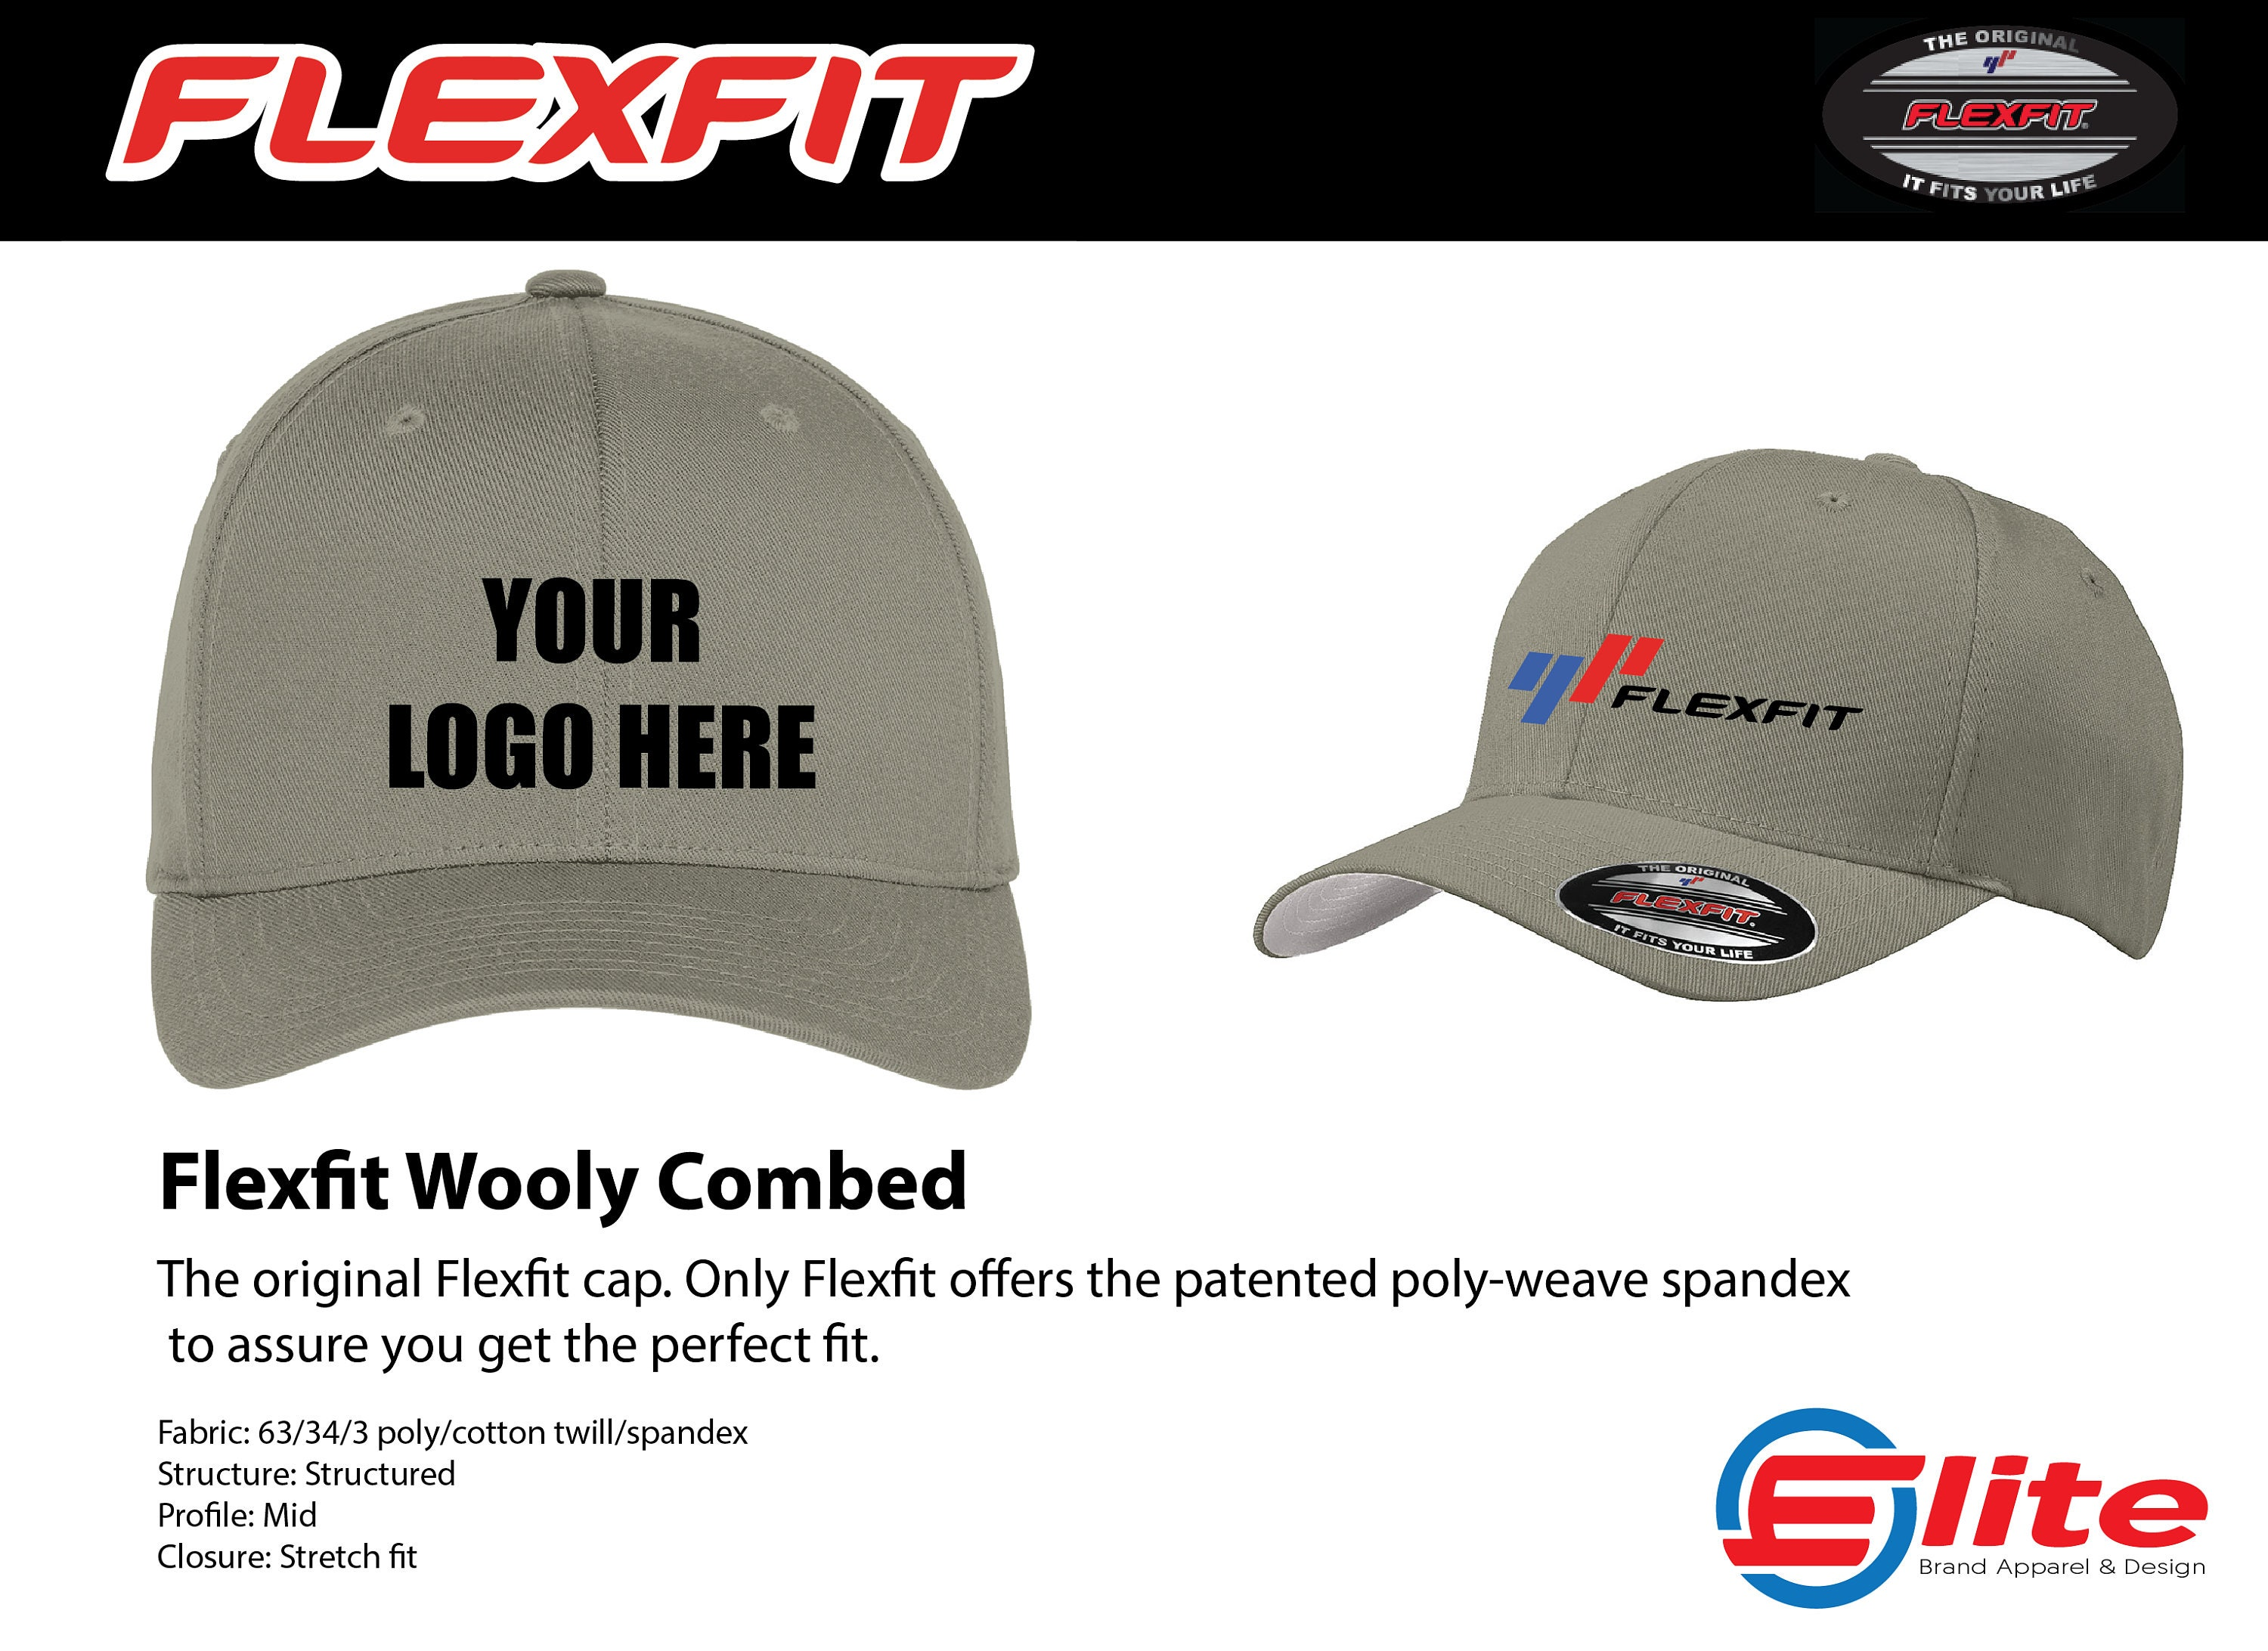 a7eefbfa6 Original FLEXFIT Custom FlexFit Hat Embroidered Hat | Etsy